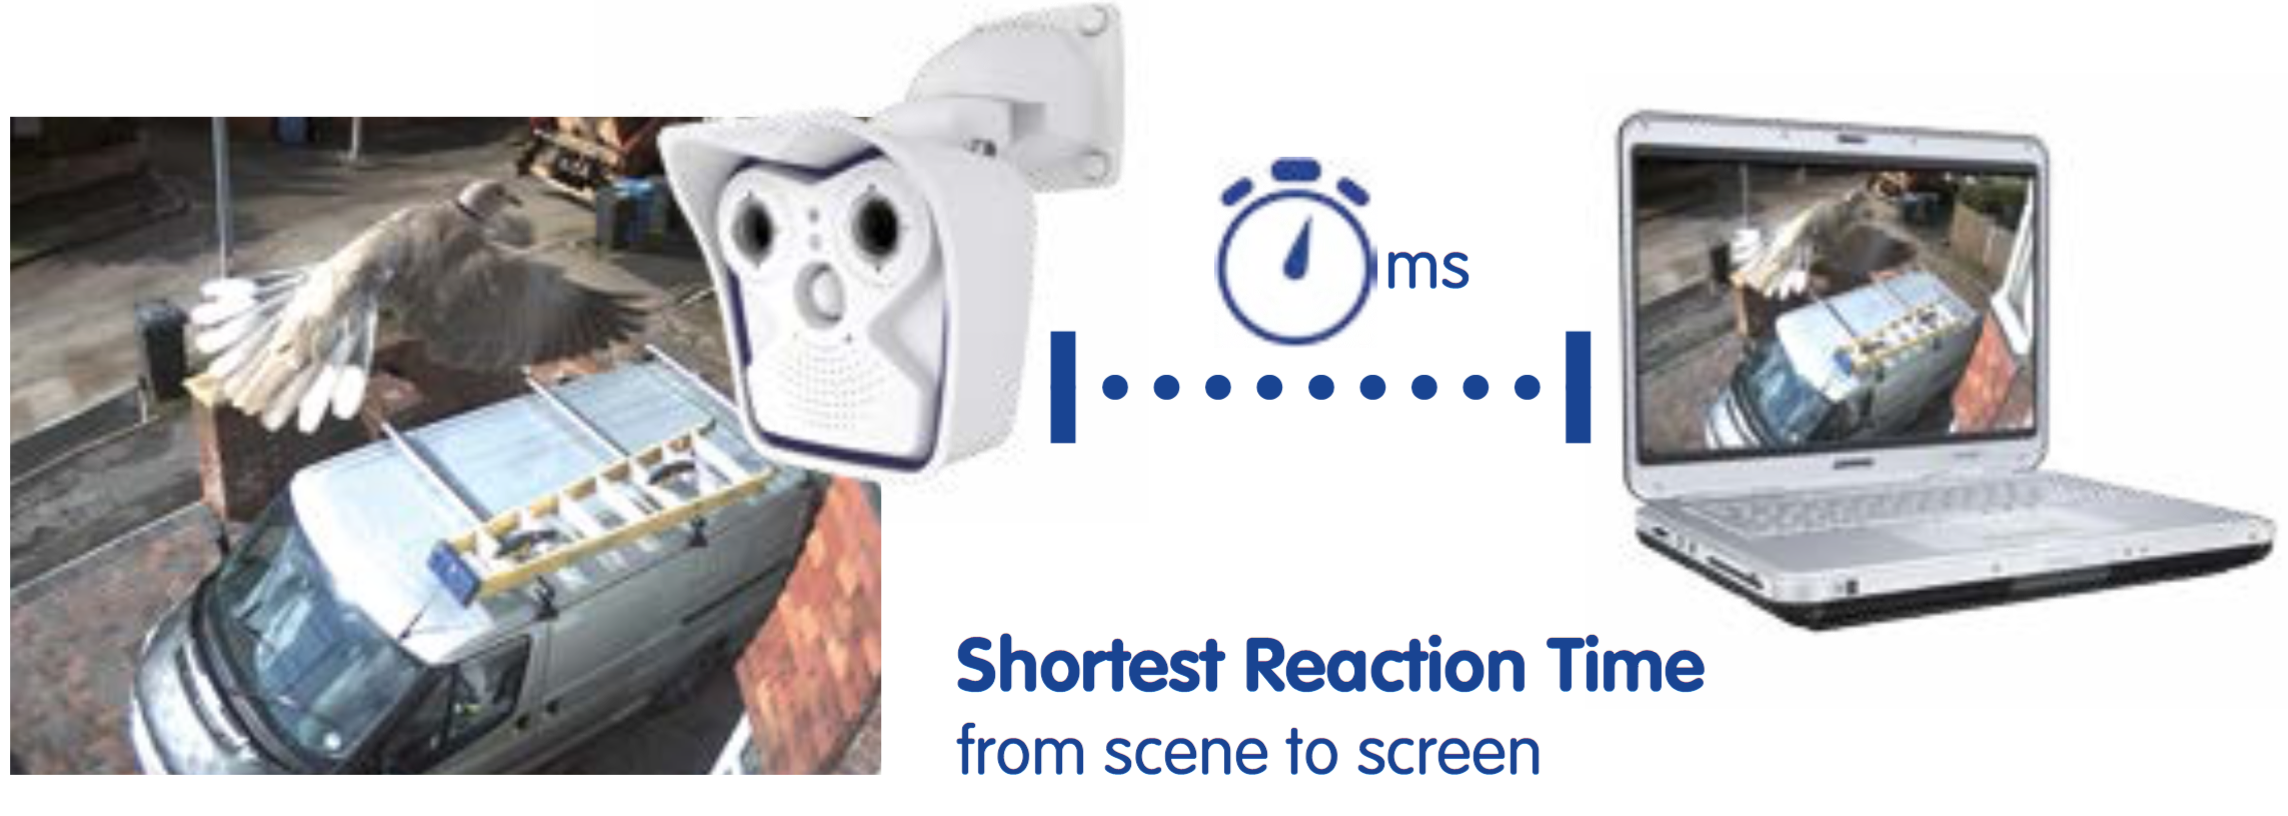 Shortest Reaction Time